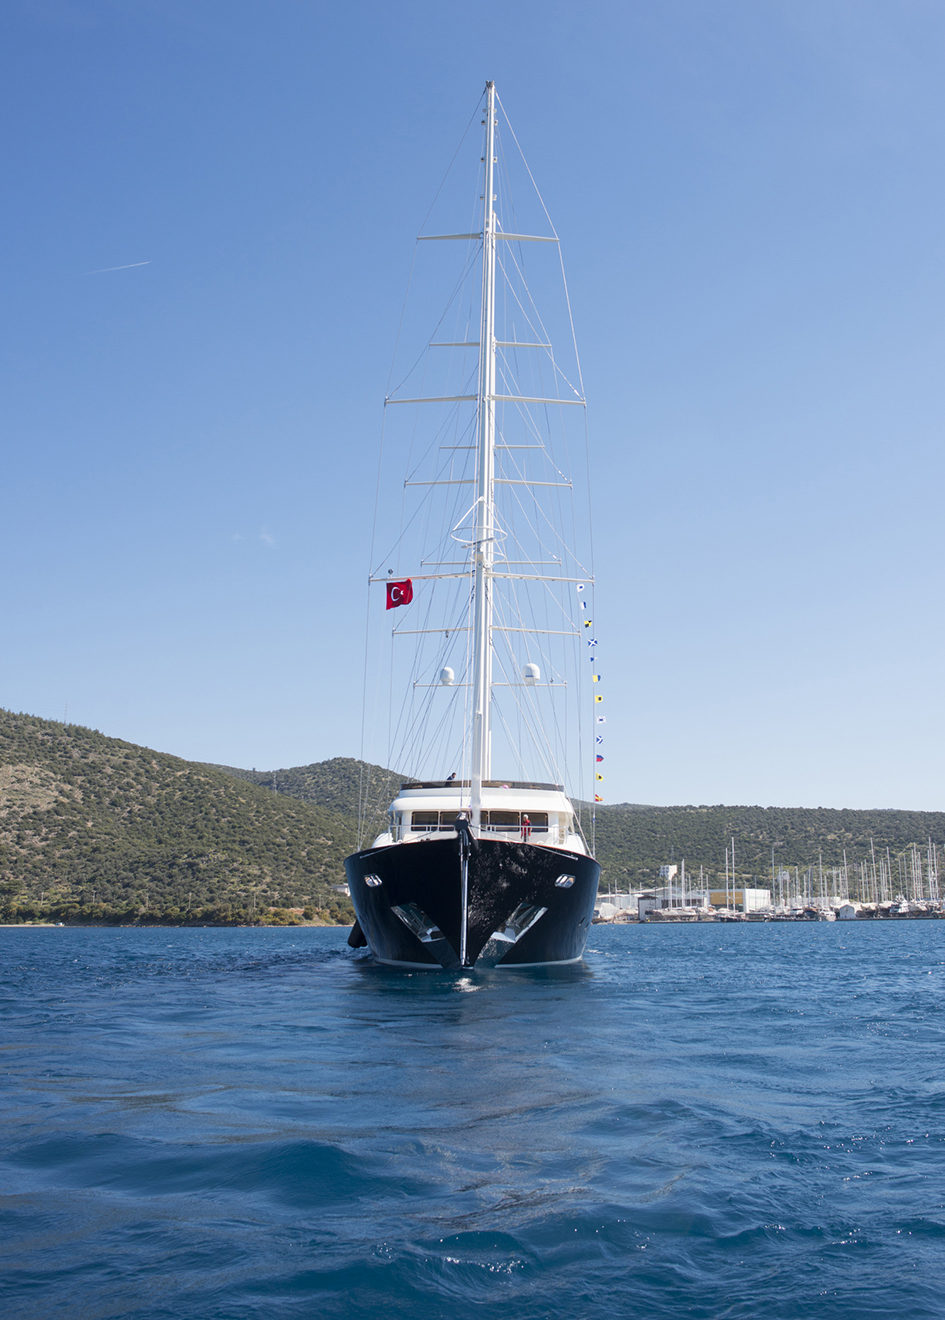 bow-view-of-the-neta-marine-motorsailer-yacht-meira